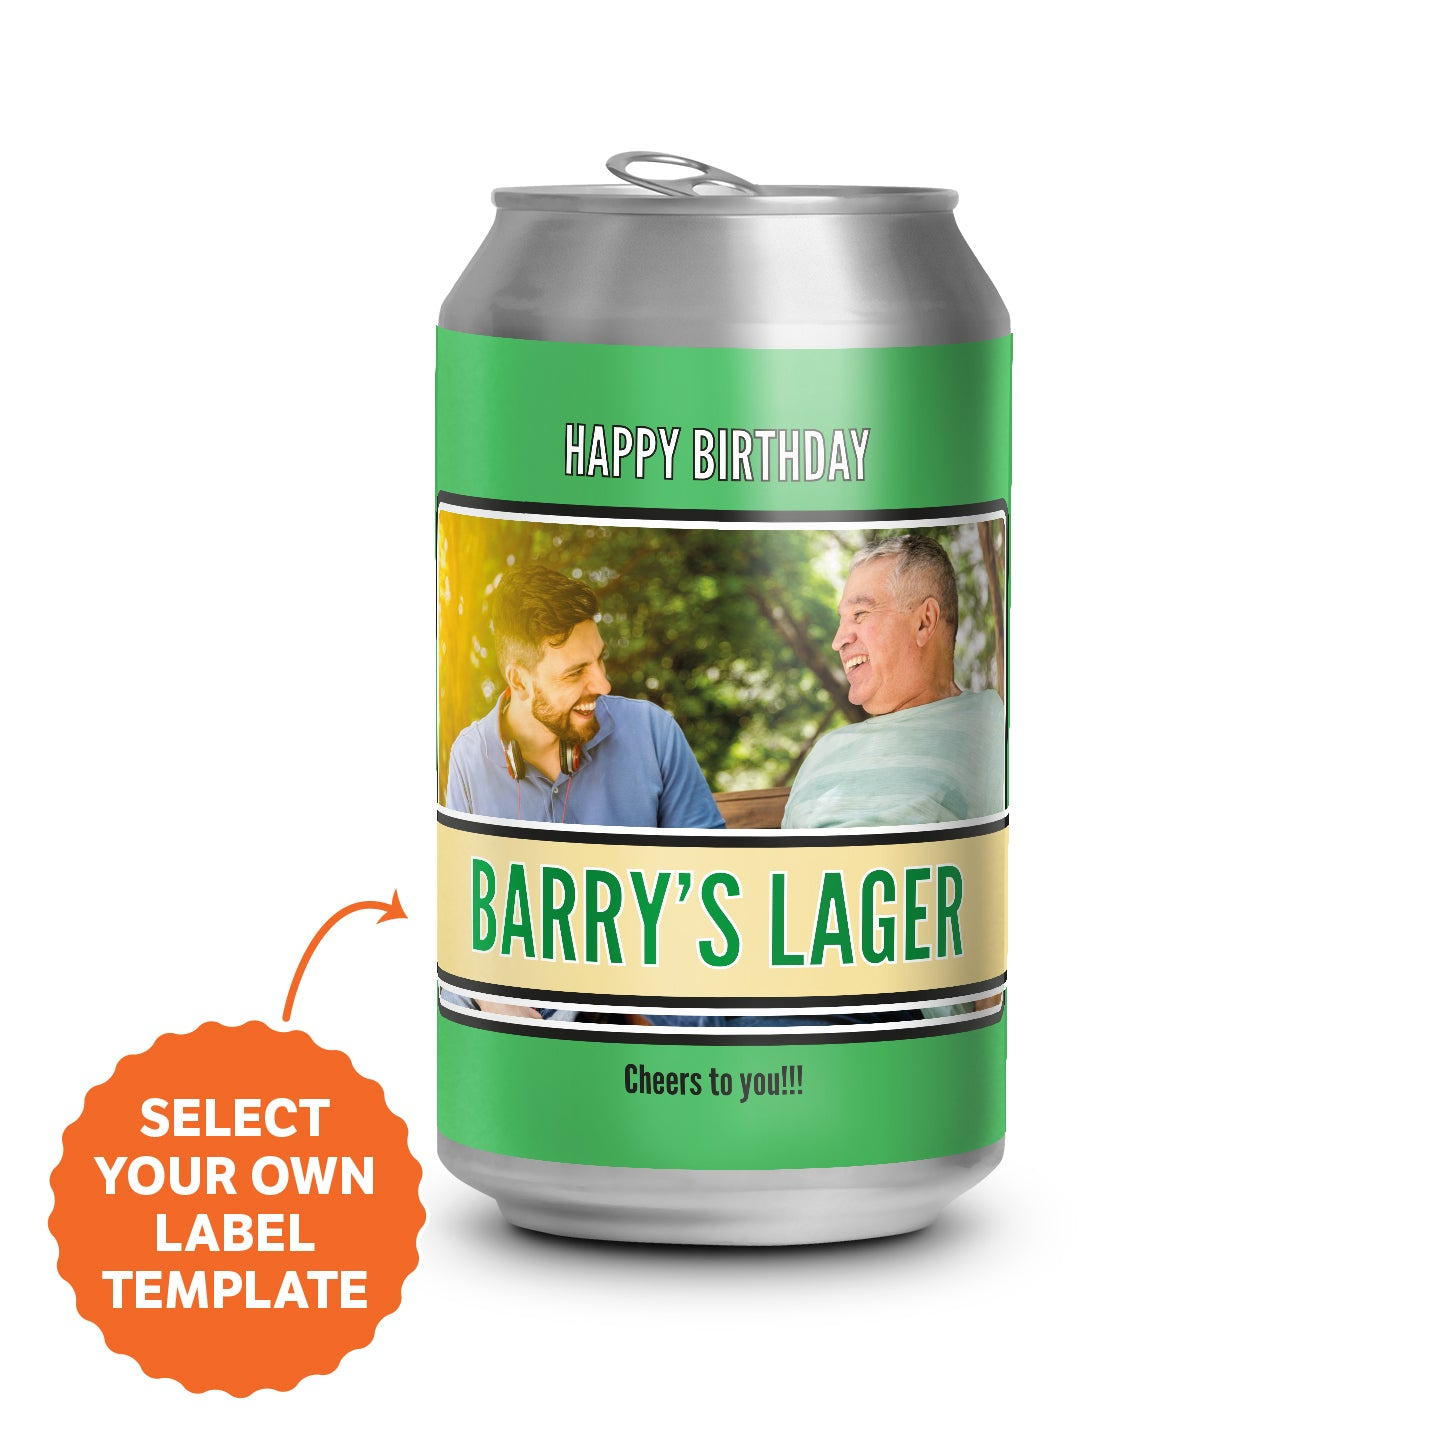 Lager Cans 4.6% - 375ml - 6 Pack